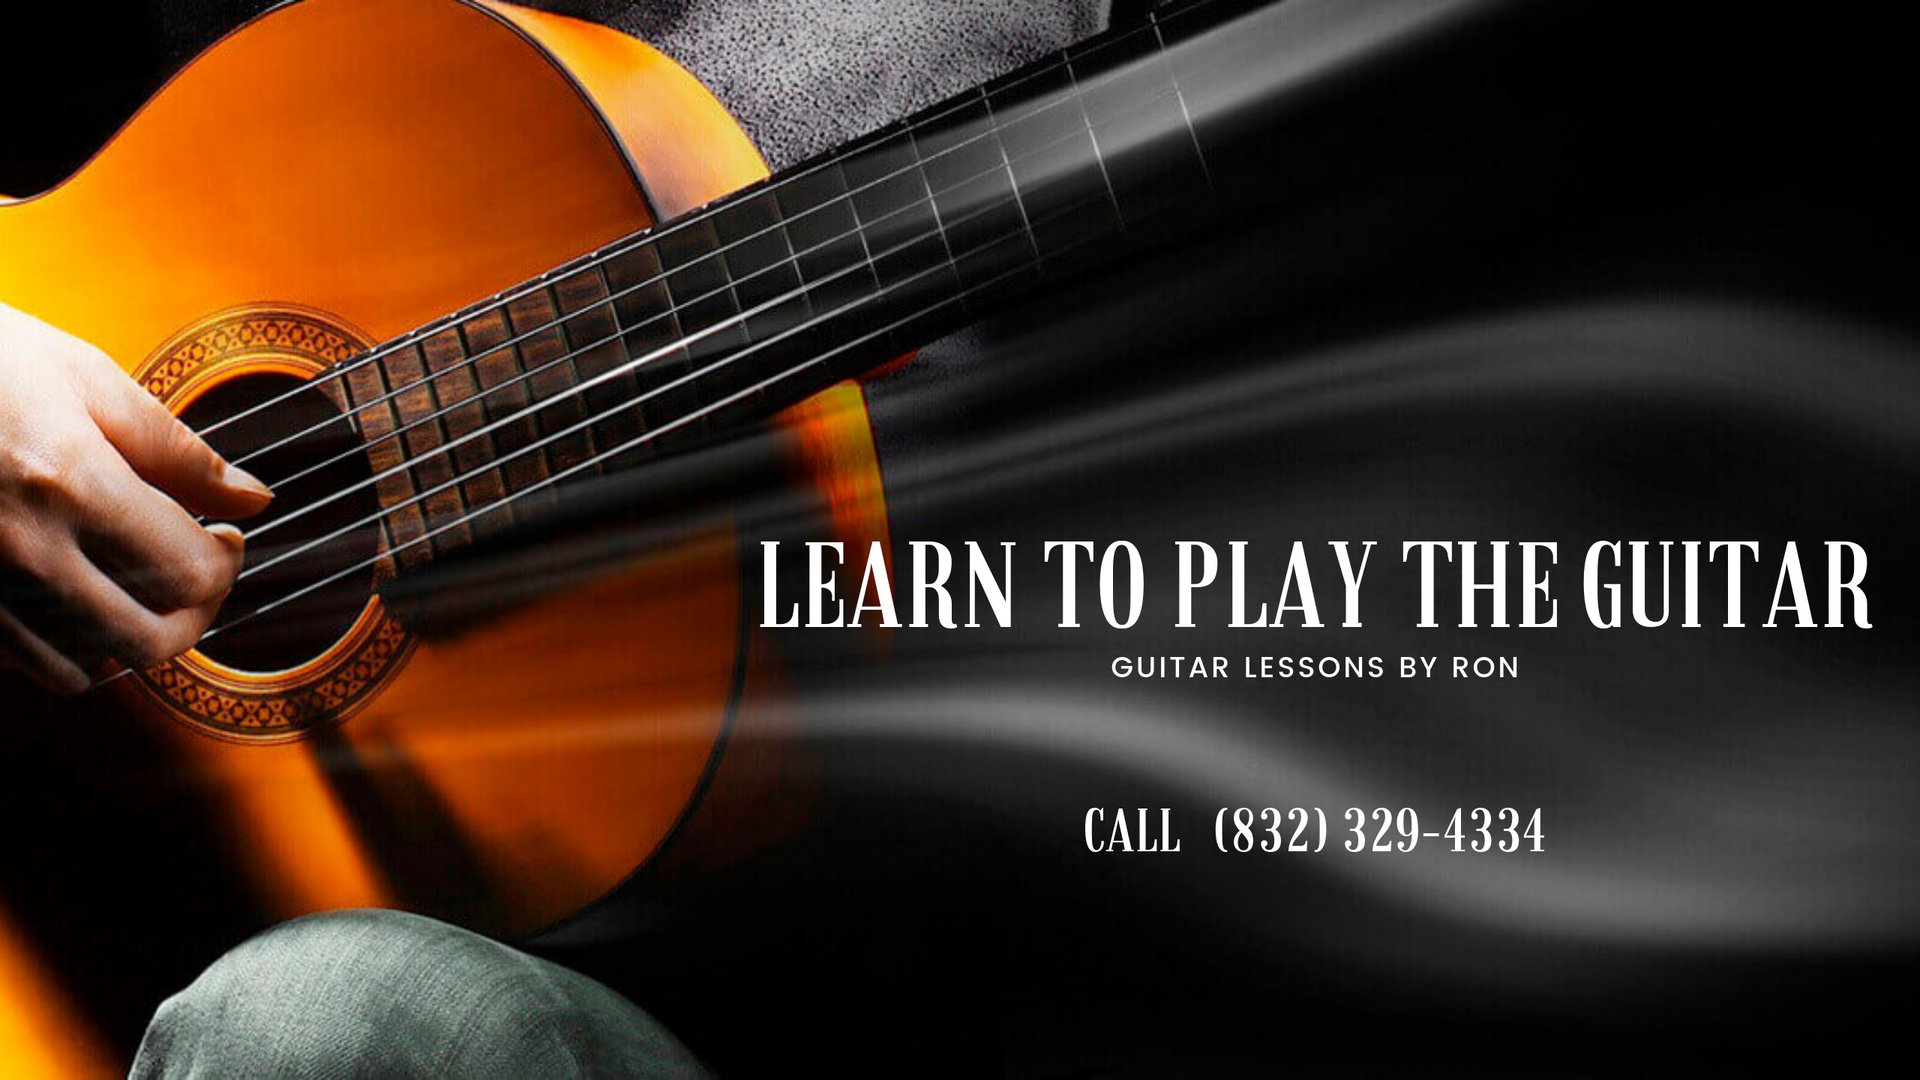 Guitar Lessons By Ron - Book Today!